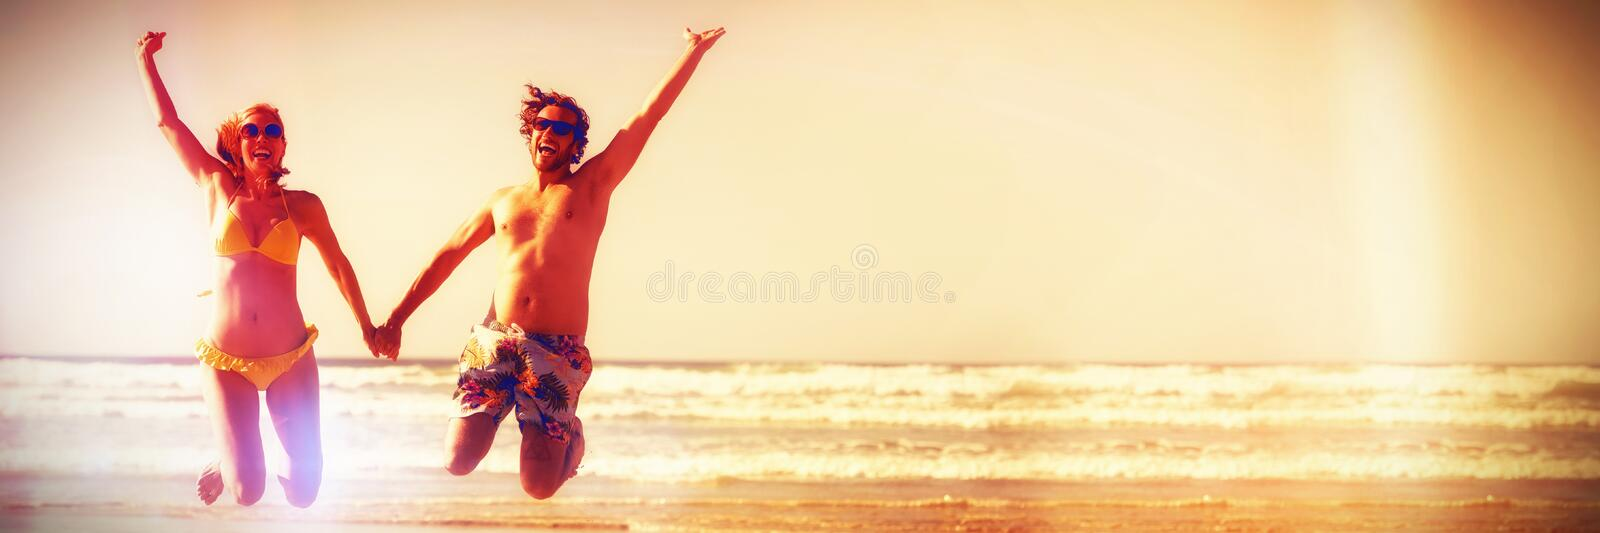 Cheerful couple holding hands while jumping at beach royalty free stock images